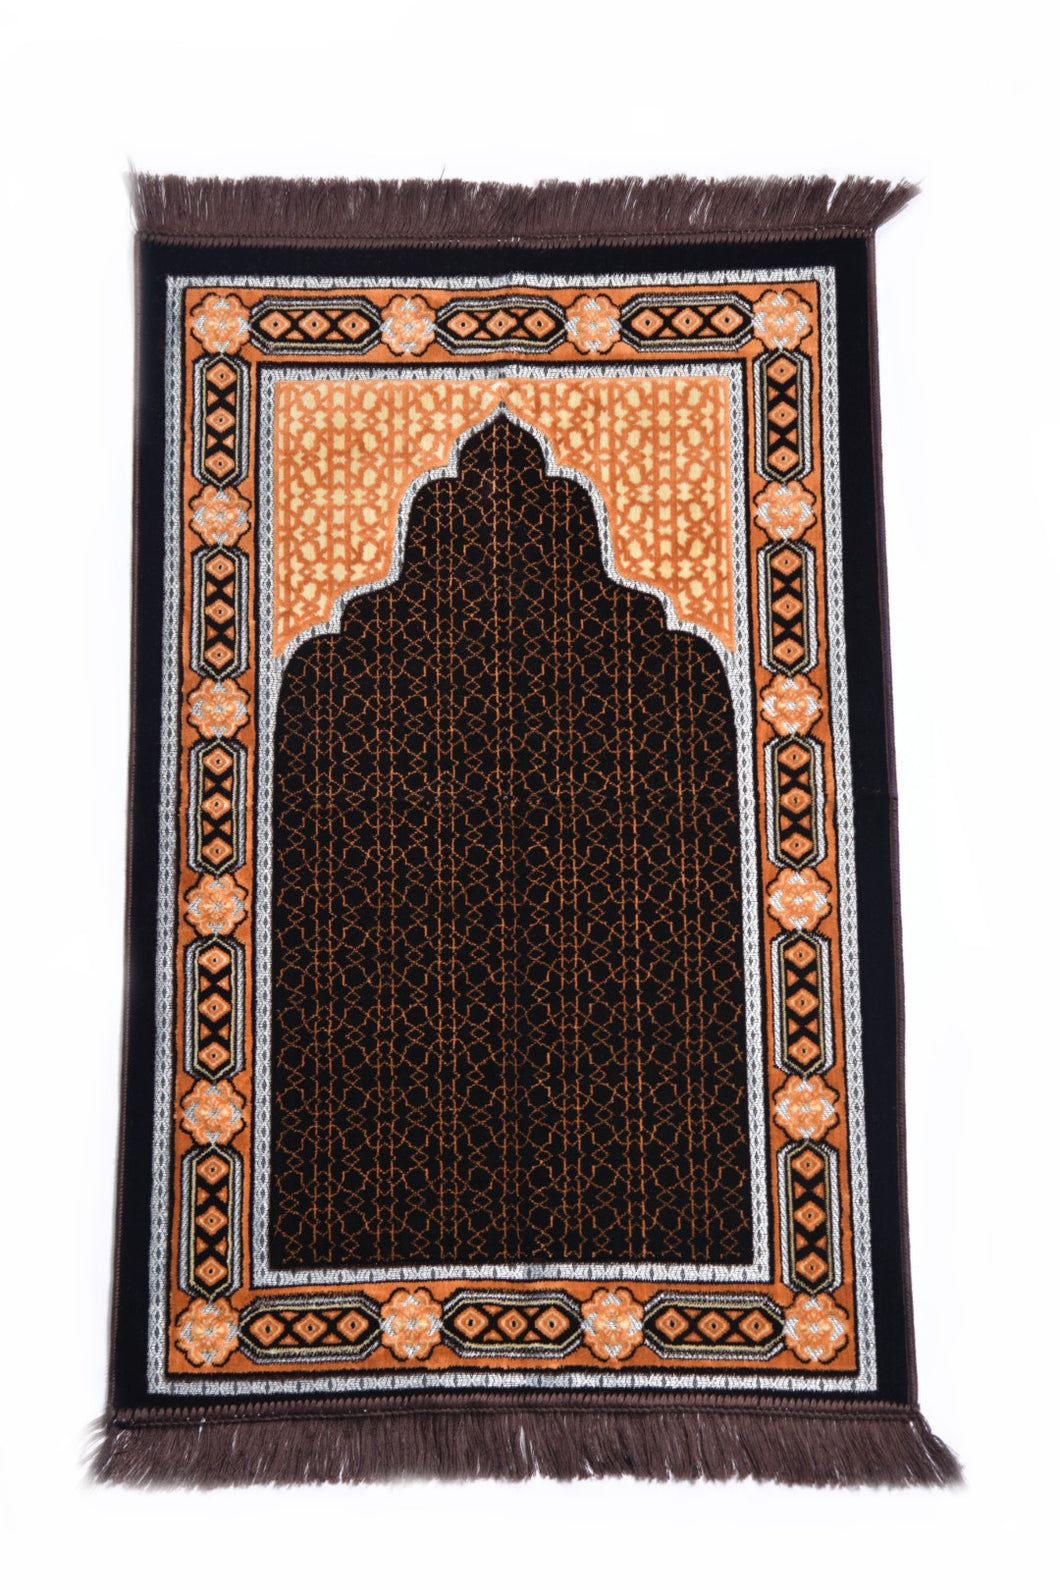 Al Arabia Ultra Lurex Muslim Prayer Rug - Very Thick Plush Velvet - Islamic Motifs Design & Fringes On Both Sides - Islamic Prayer Mat - Ideal Gift for Ramadan & Special Occasions, 44 x 27